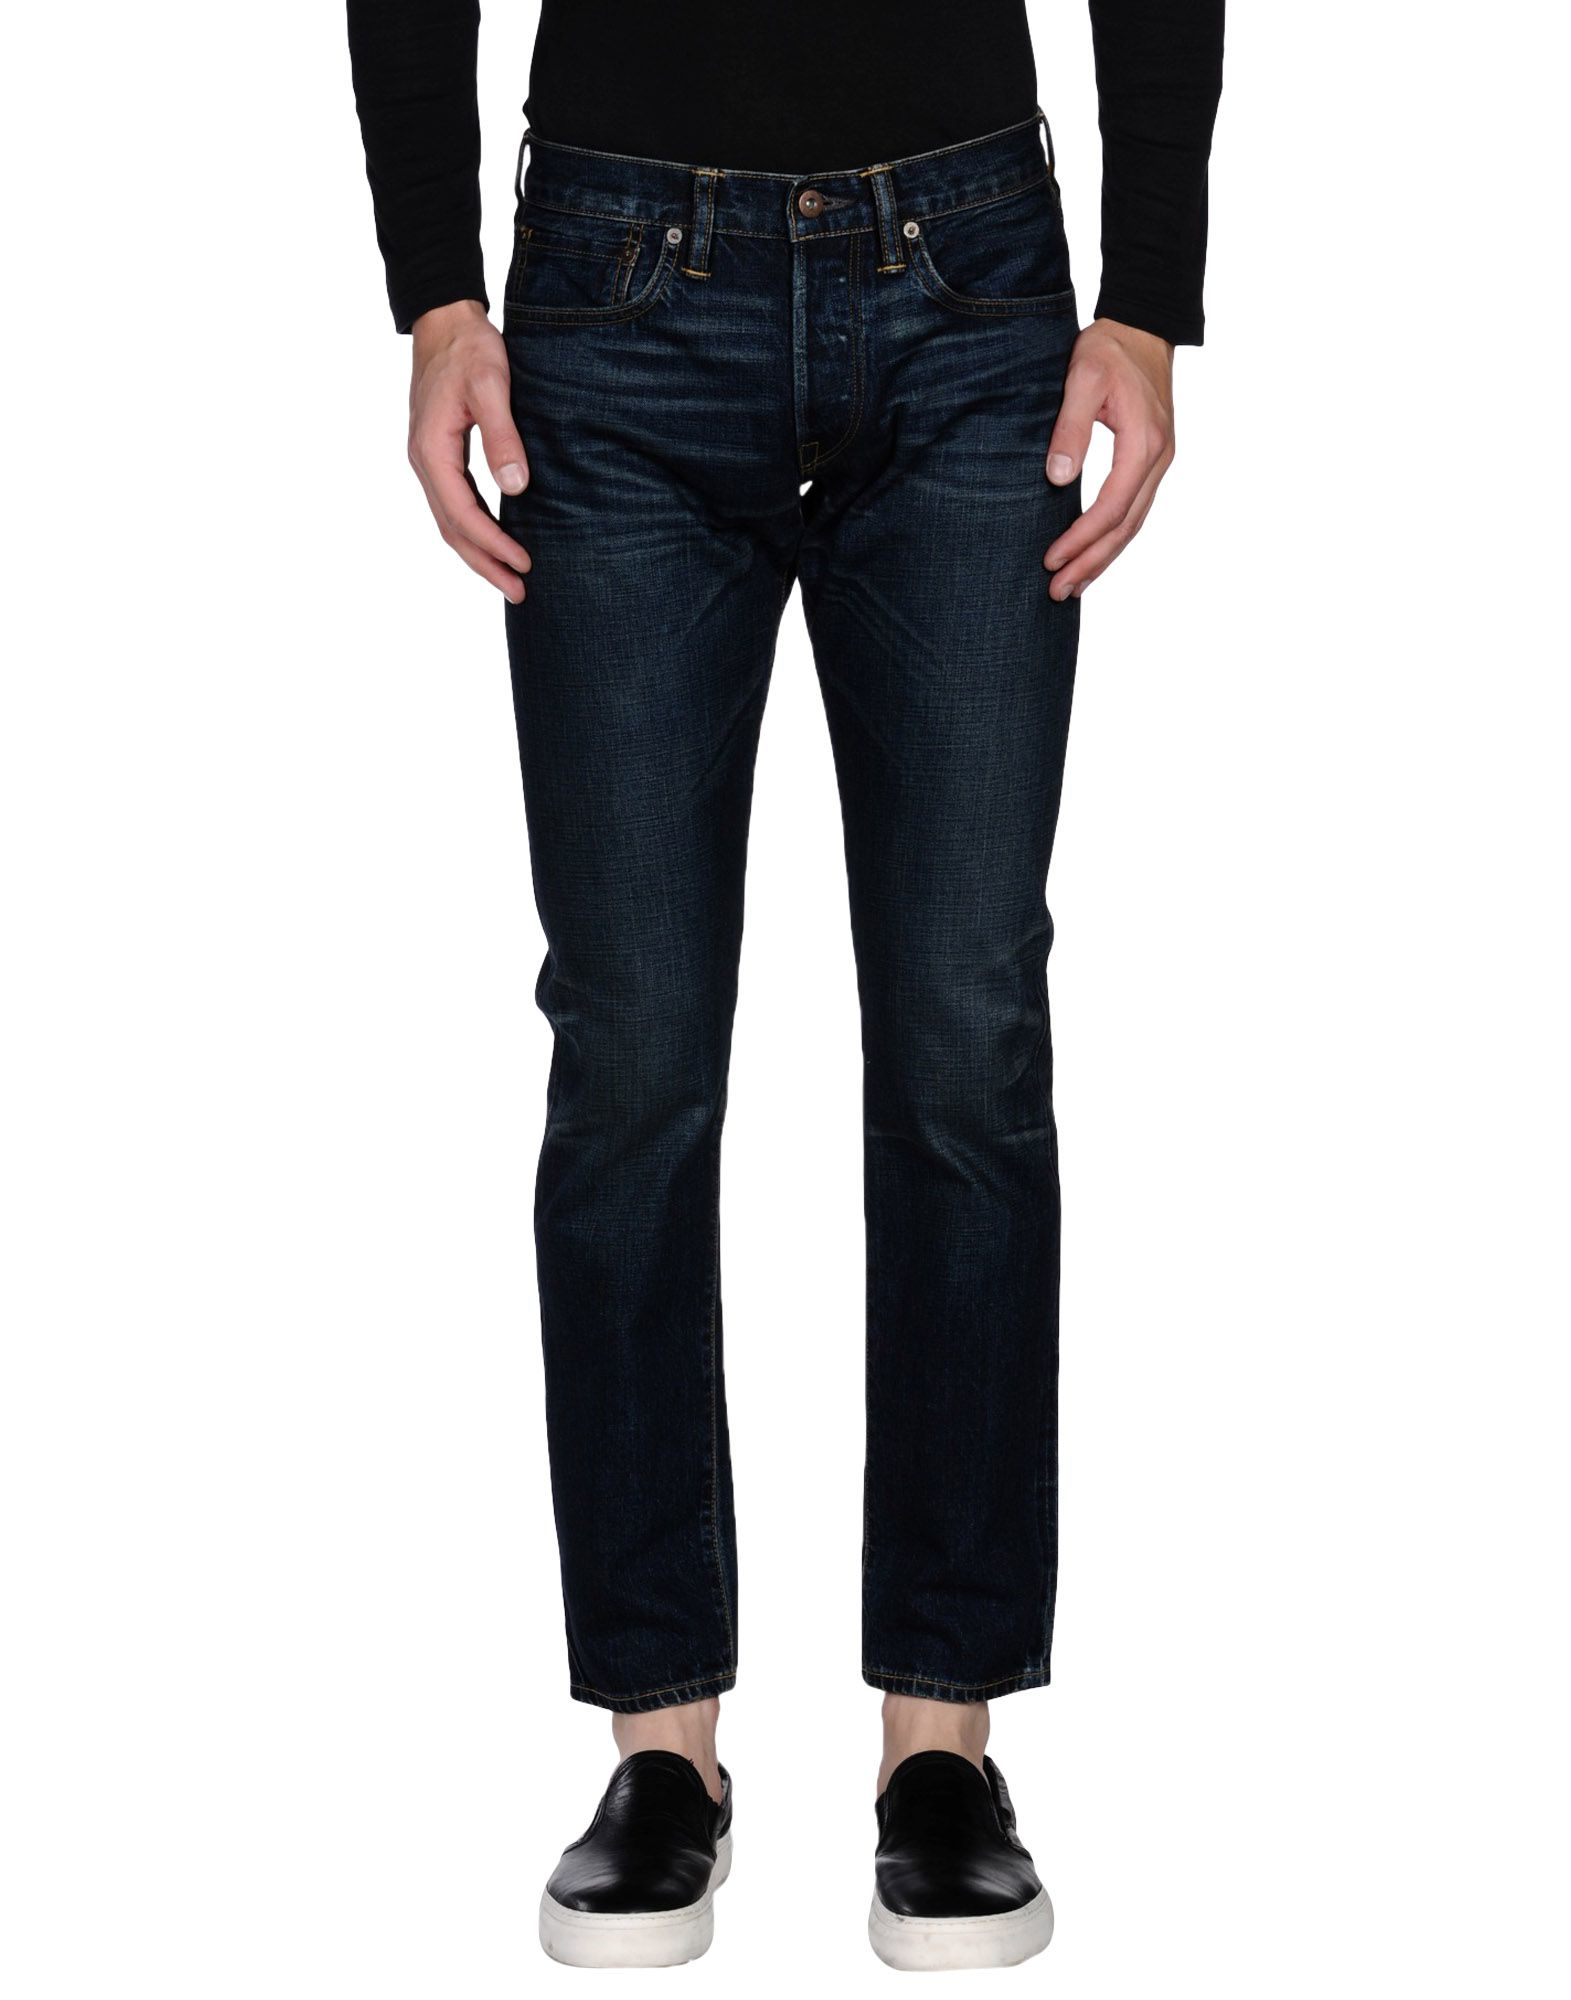 simon miller denim pants in black for men